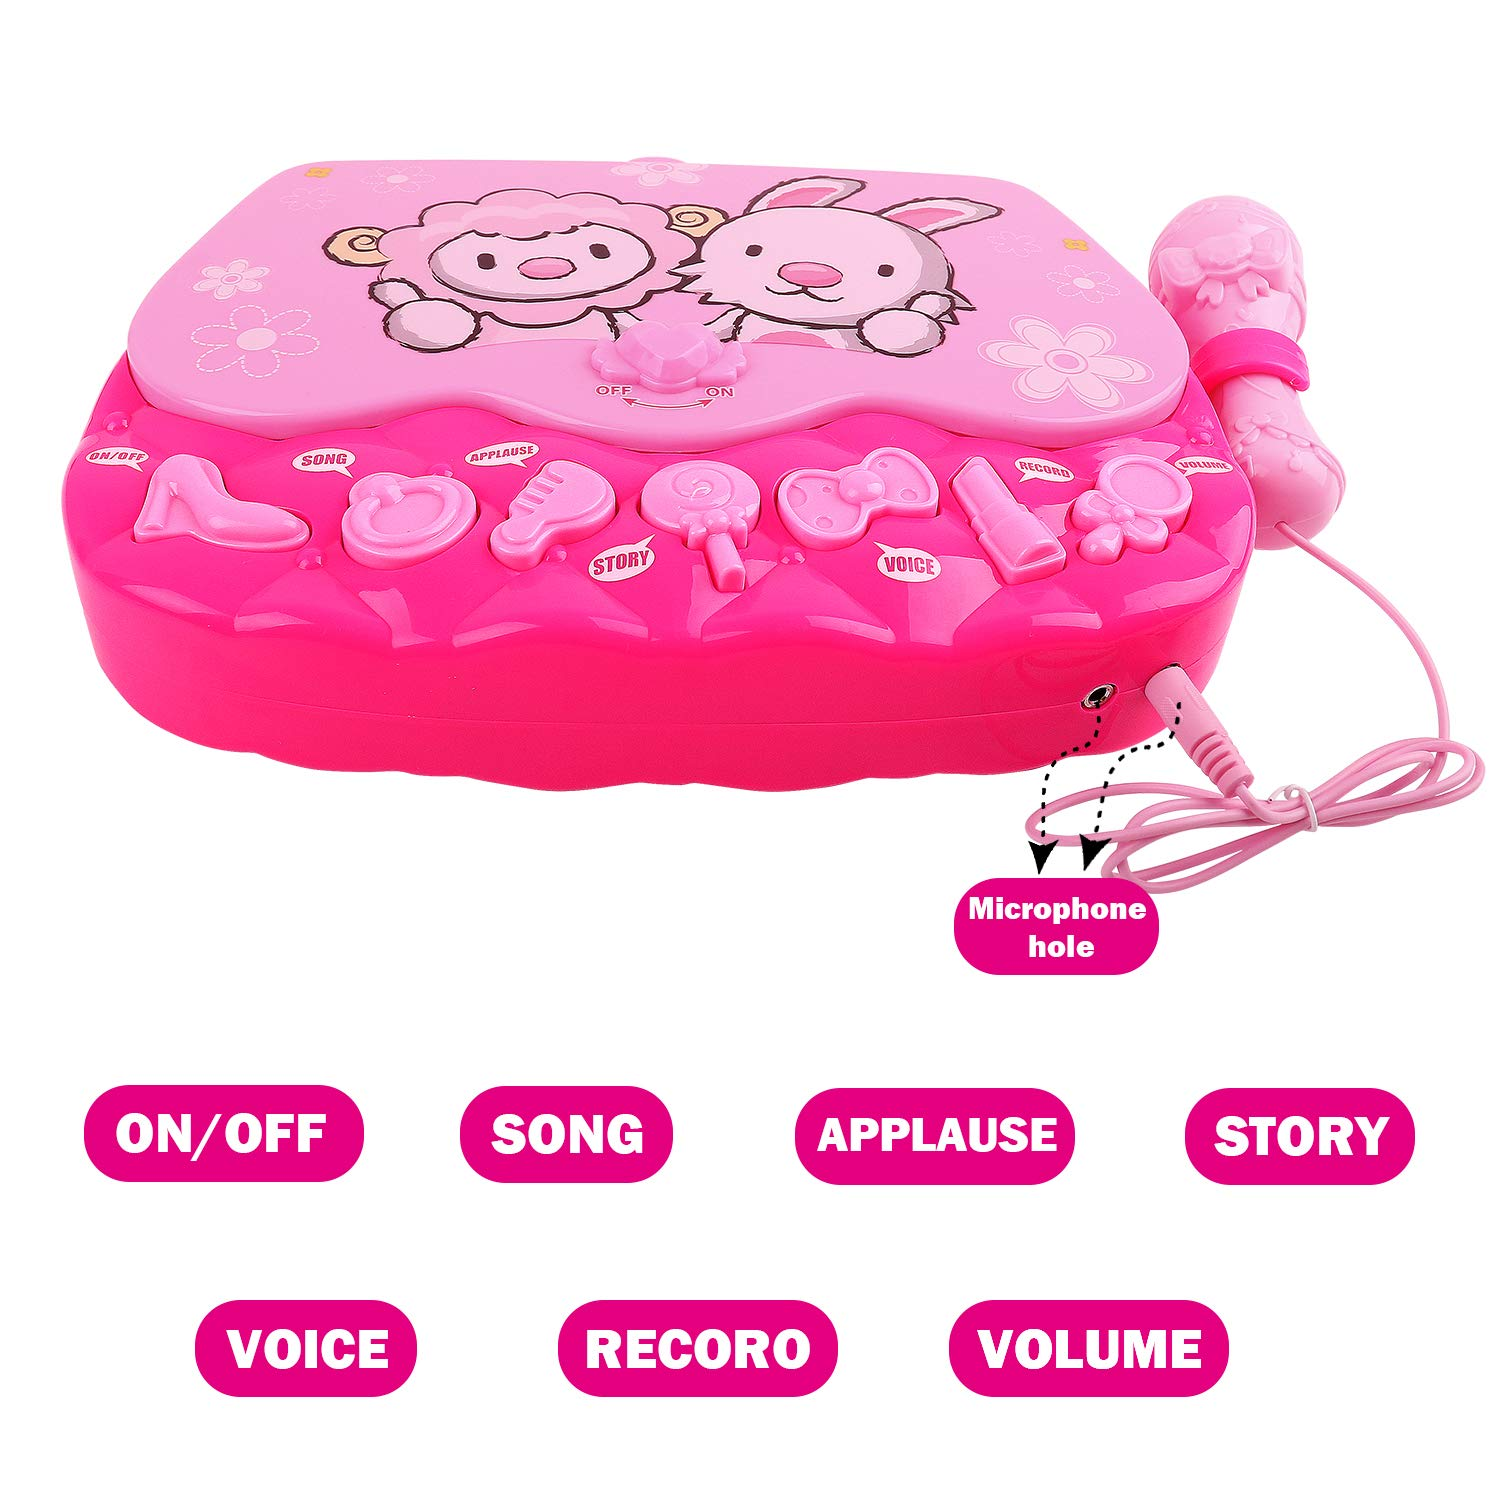 M SANMERSEN Karaoke Machine Toys for 3-6 Year Old Girls, Portable Musical Bag with Microphone Karaoke Player Toys for Girls Gifts Age 3 4 5 6 Xmas Gifts Pink by M SANMERSEN (Image #5)